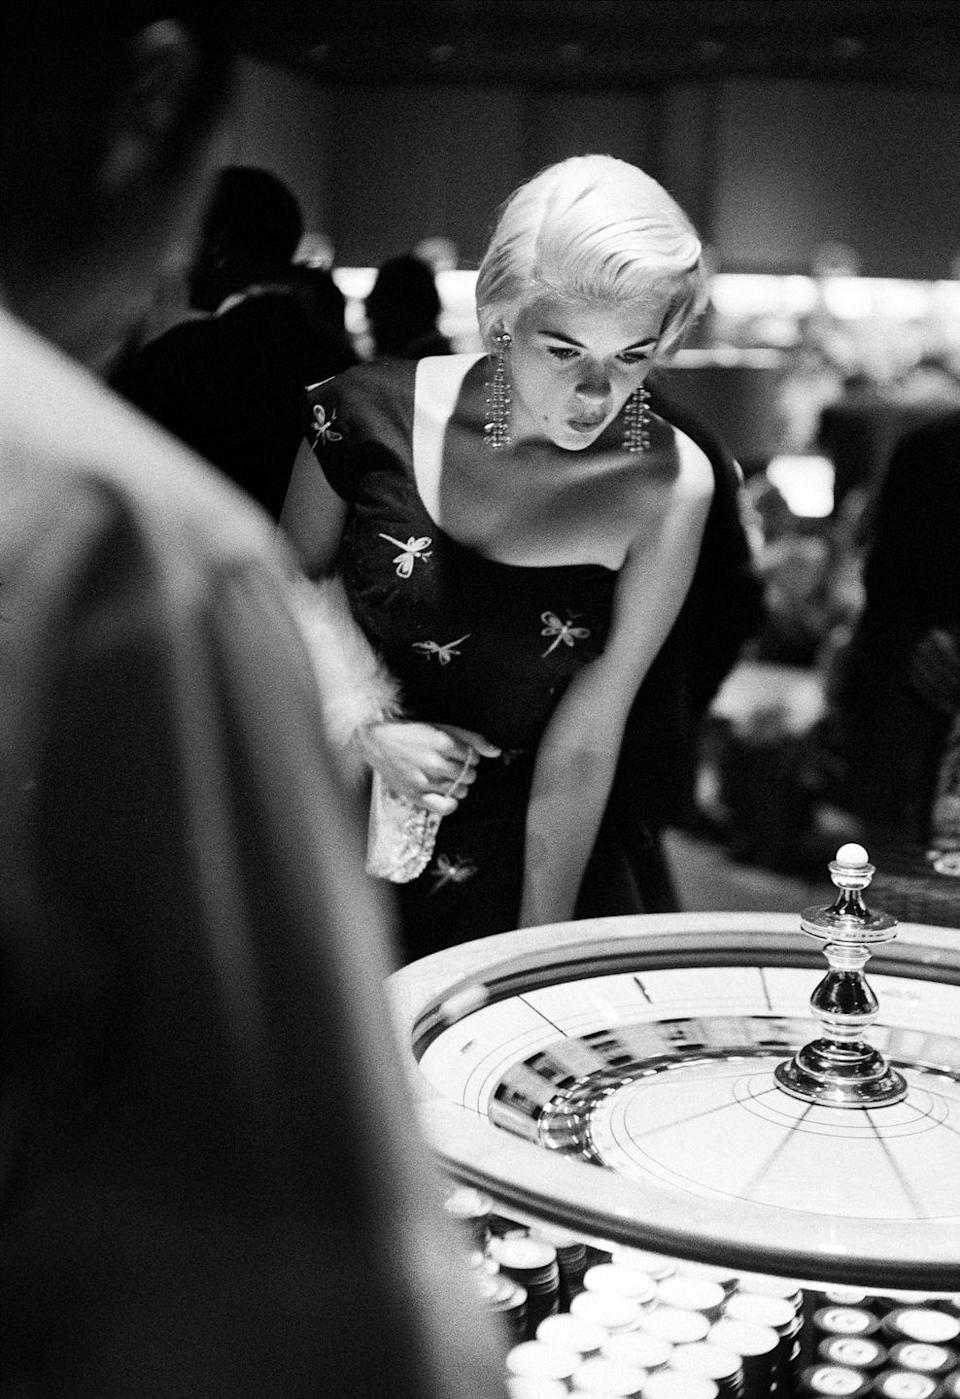 <p>Jayne Mansfield at the roulette table in 1958. The nightclub entertainer and singer was one of the early <em>Playboy</em> Playmates.</p>